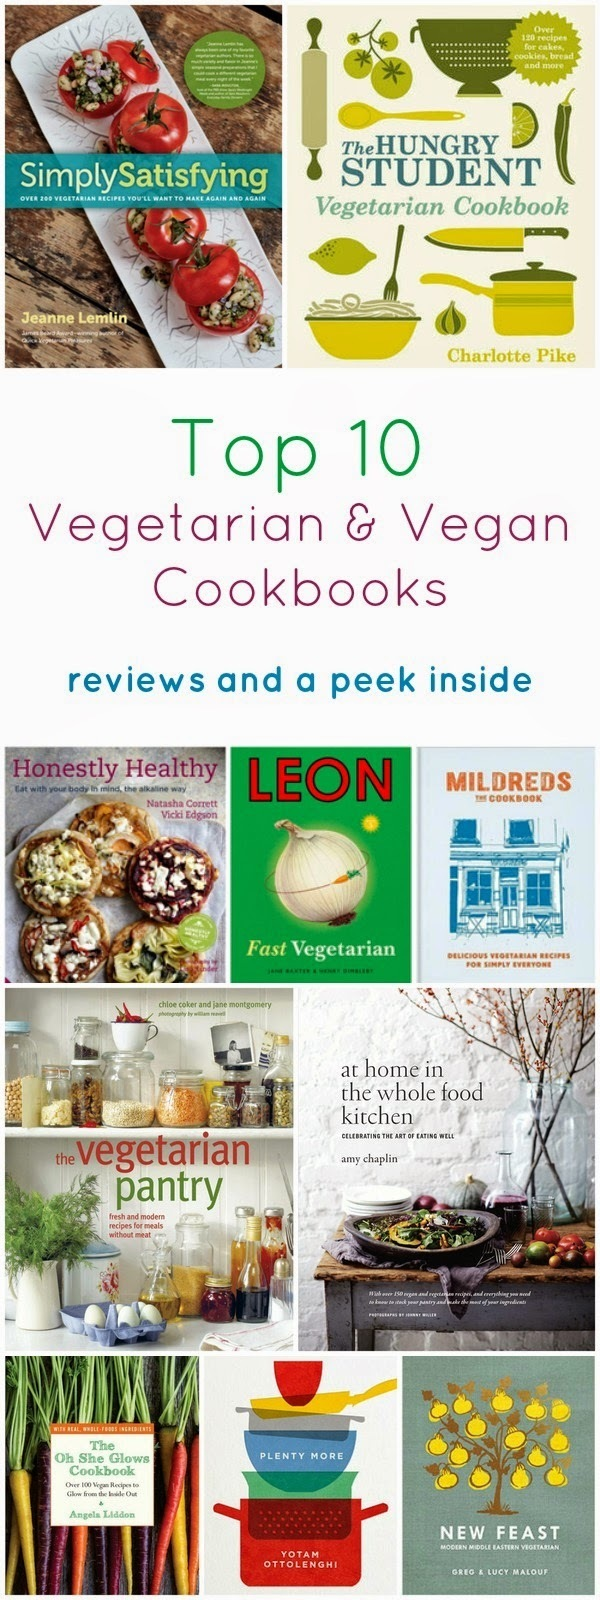 Top 10 Vegetarian and Vegan Cookbooks for National Vegetarian Week